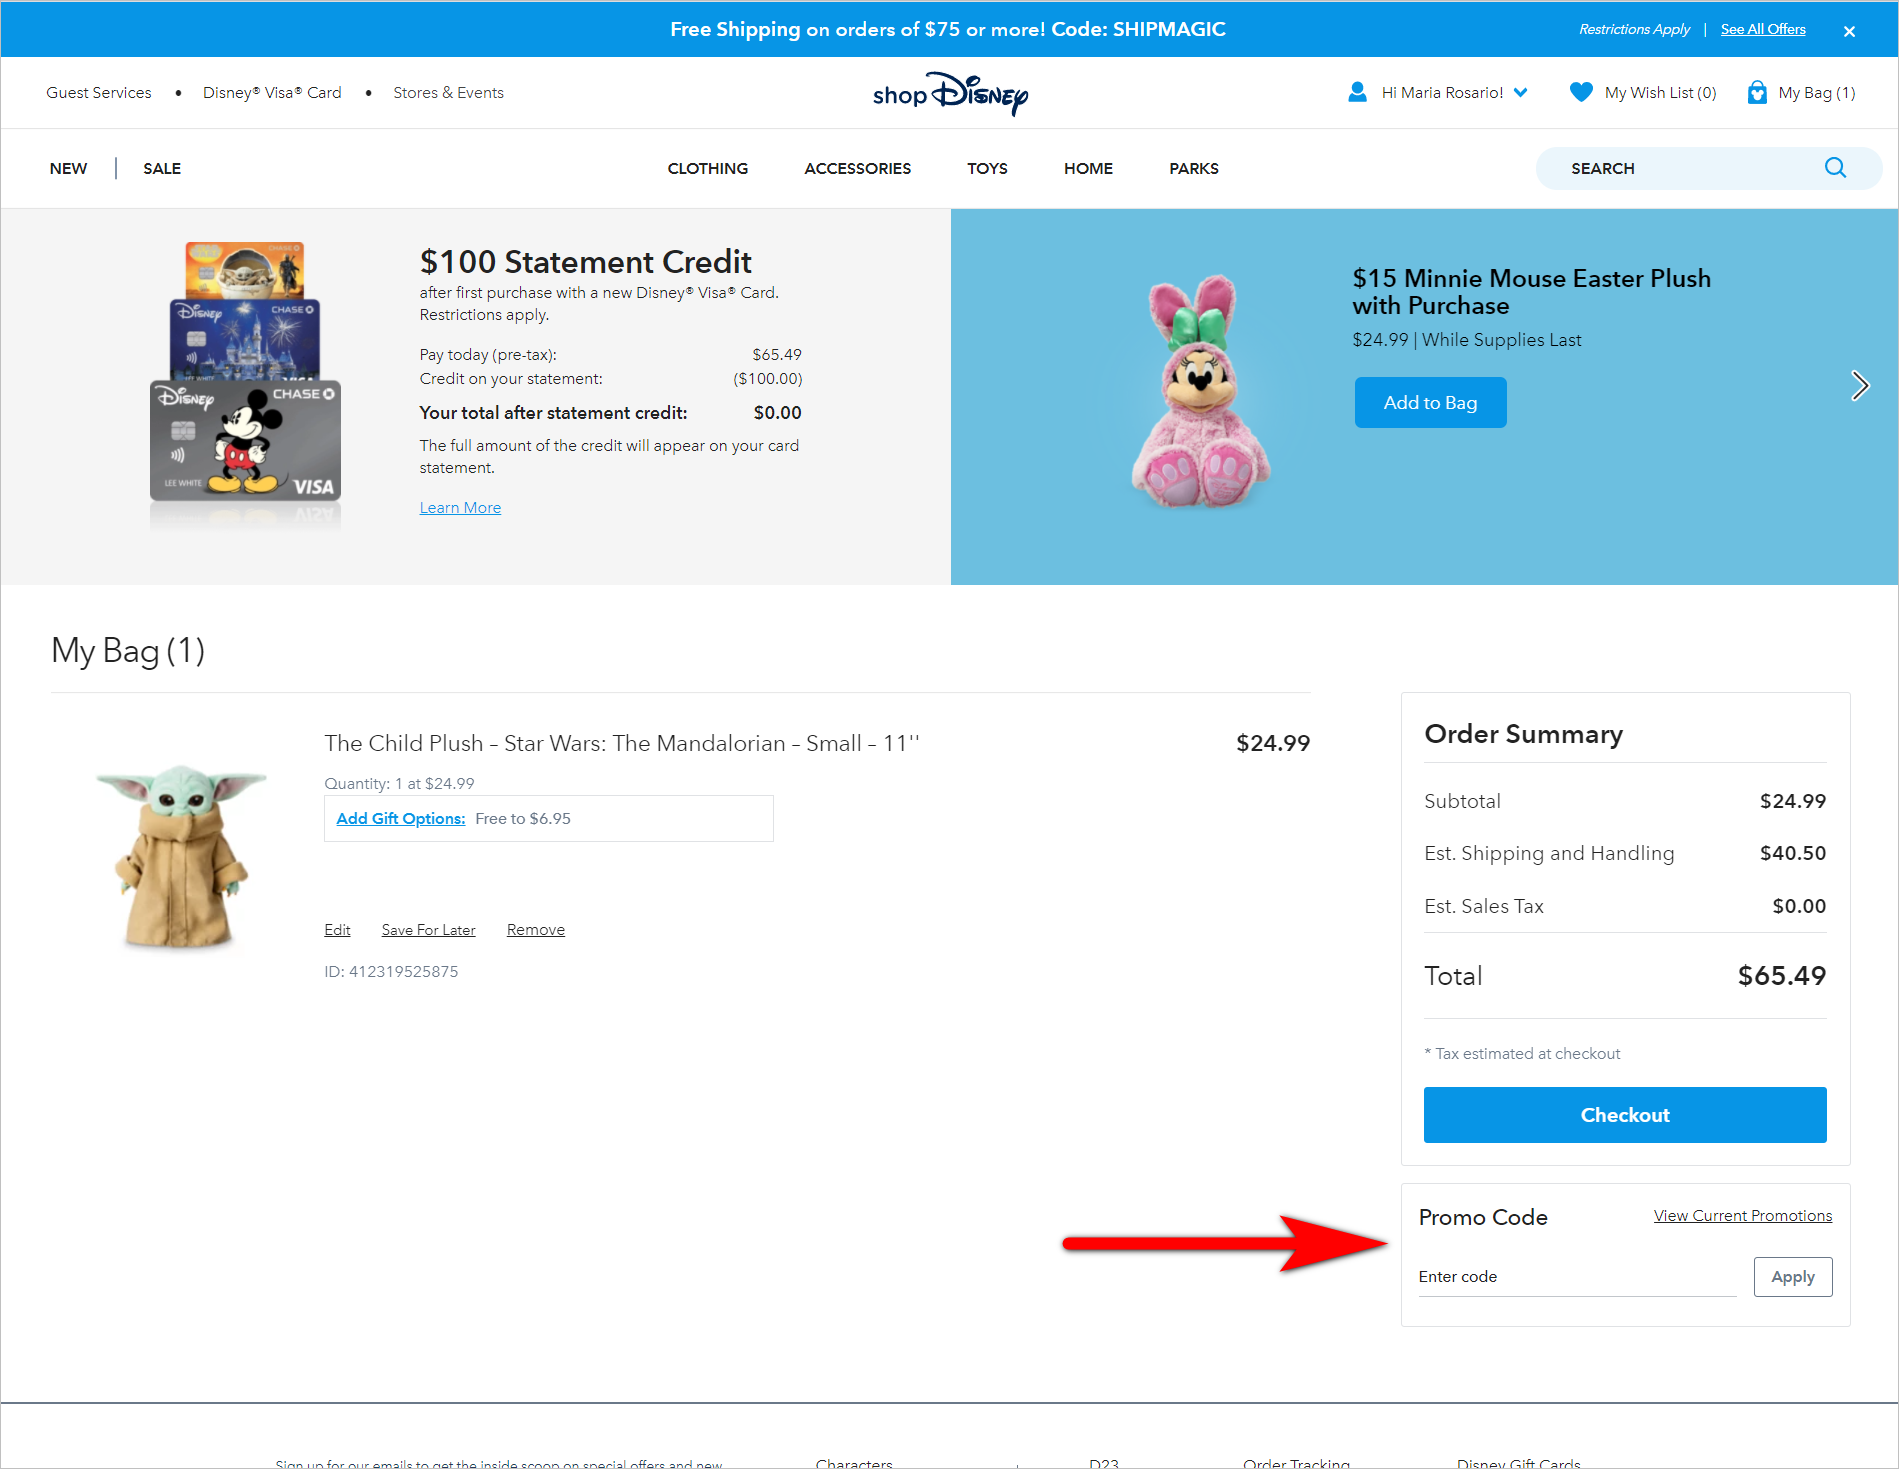 visually de-emphasized ecommerce promo code field example. shopdisney.com's shopping bag with the promo code field below the checkout button